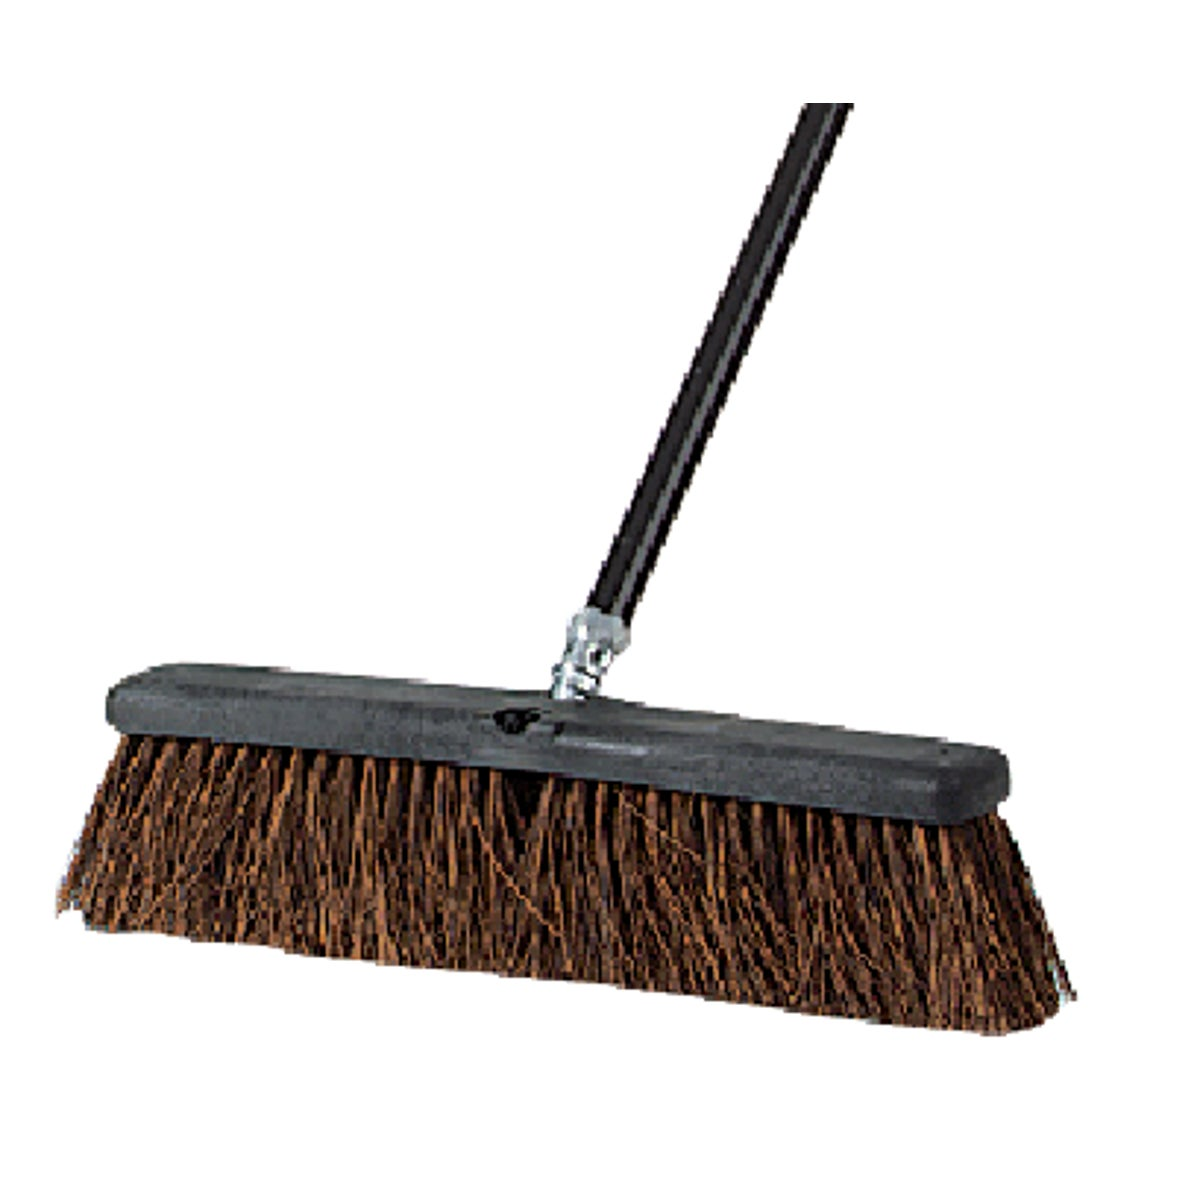 "18"" PALMYRA PUSH BROOM - DIB89210 by D Q B Ind"